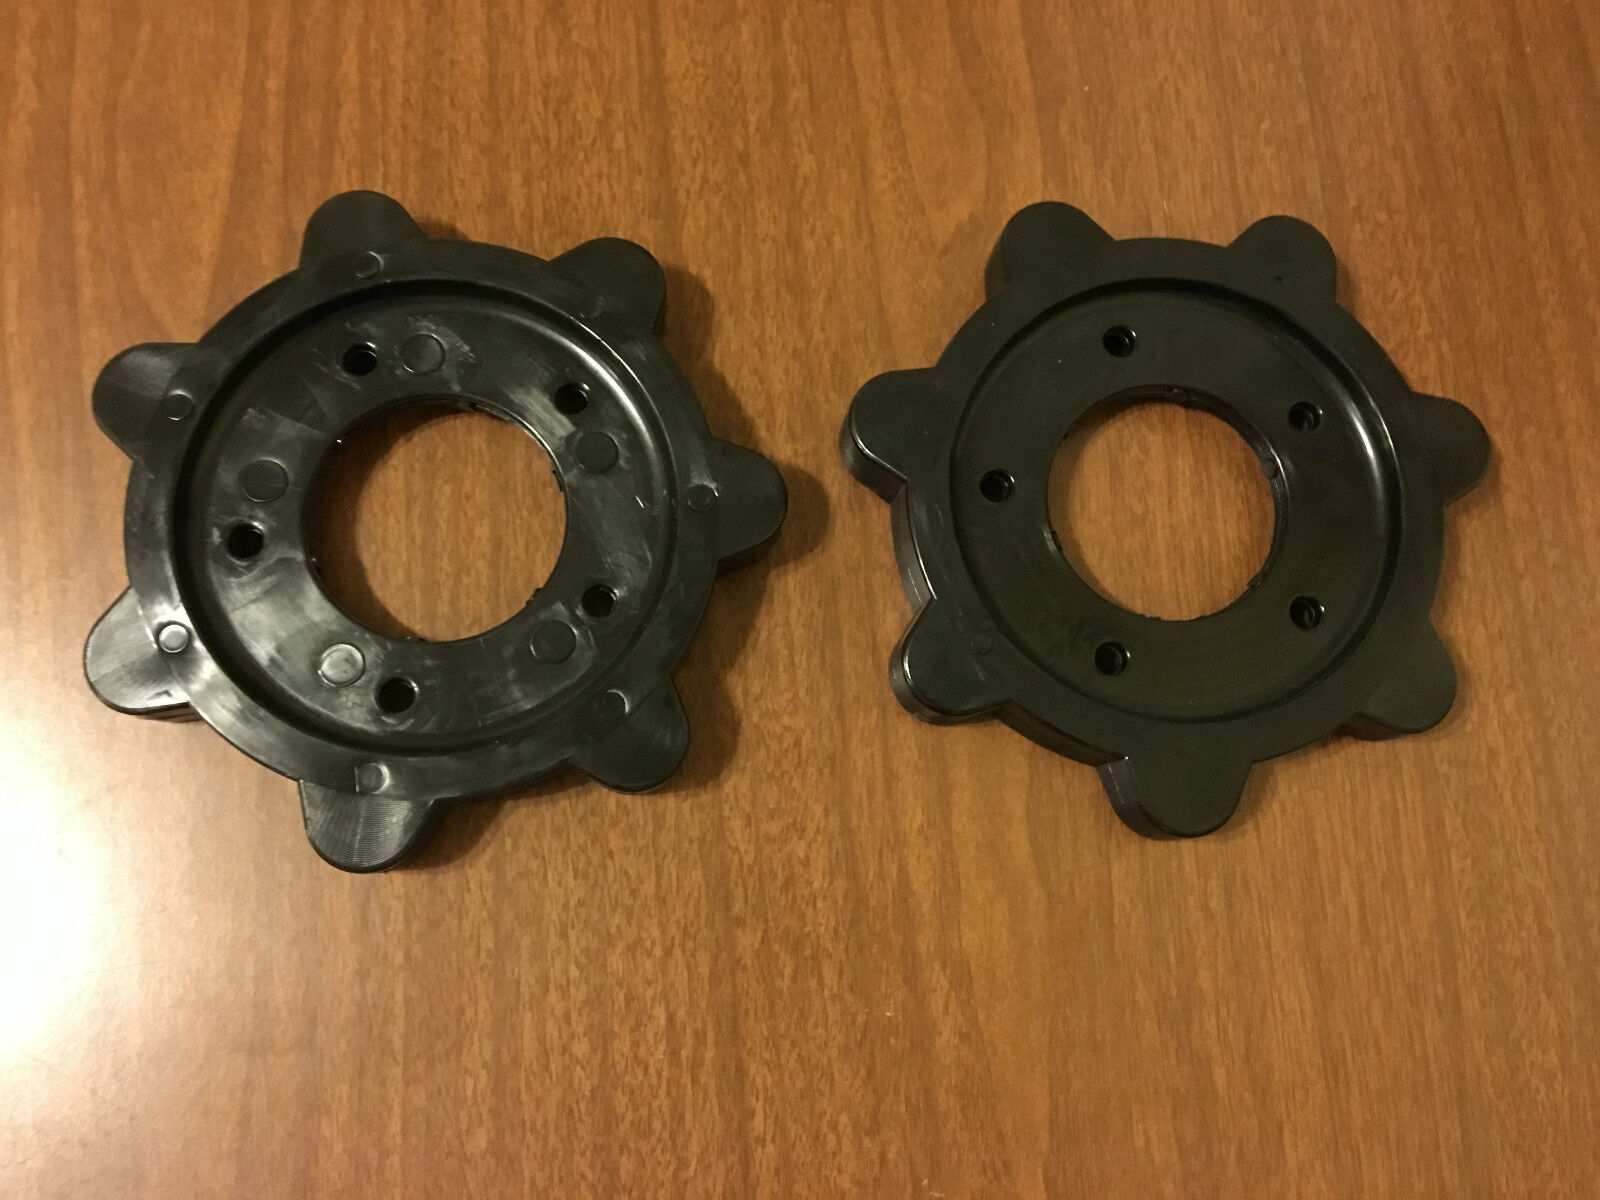 New Vintage Arctic Cat Snowmobile Track Drive Sprockets 0102-015, 1967 to 1972